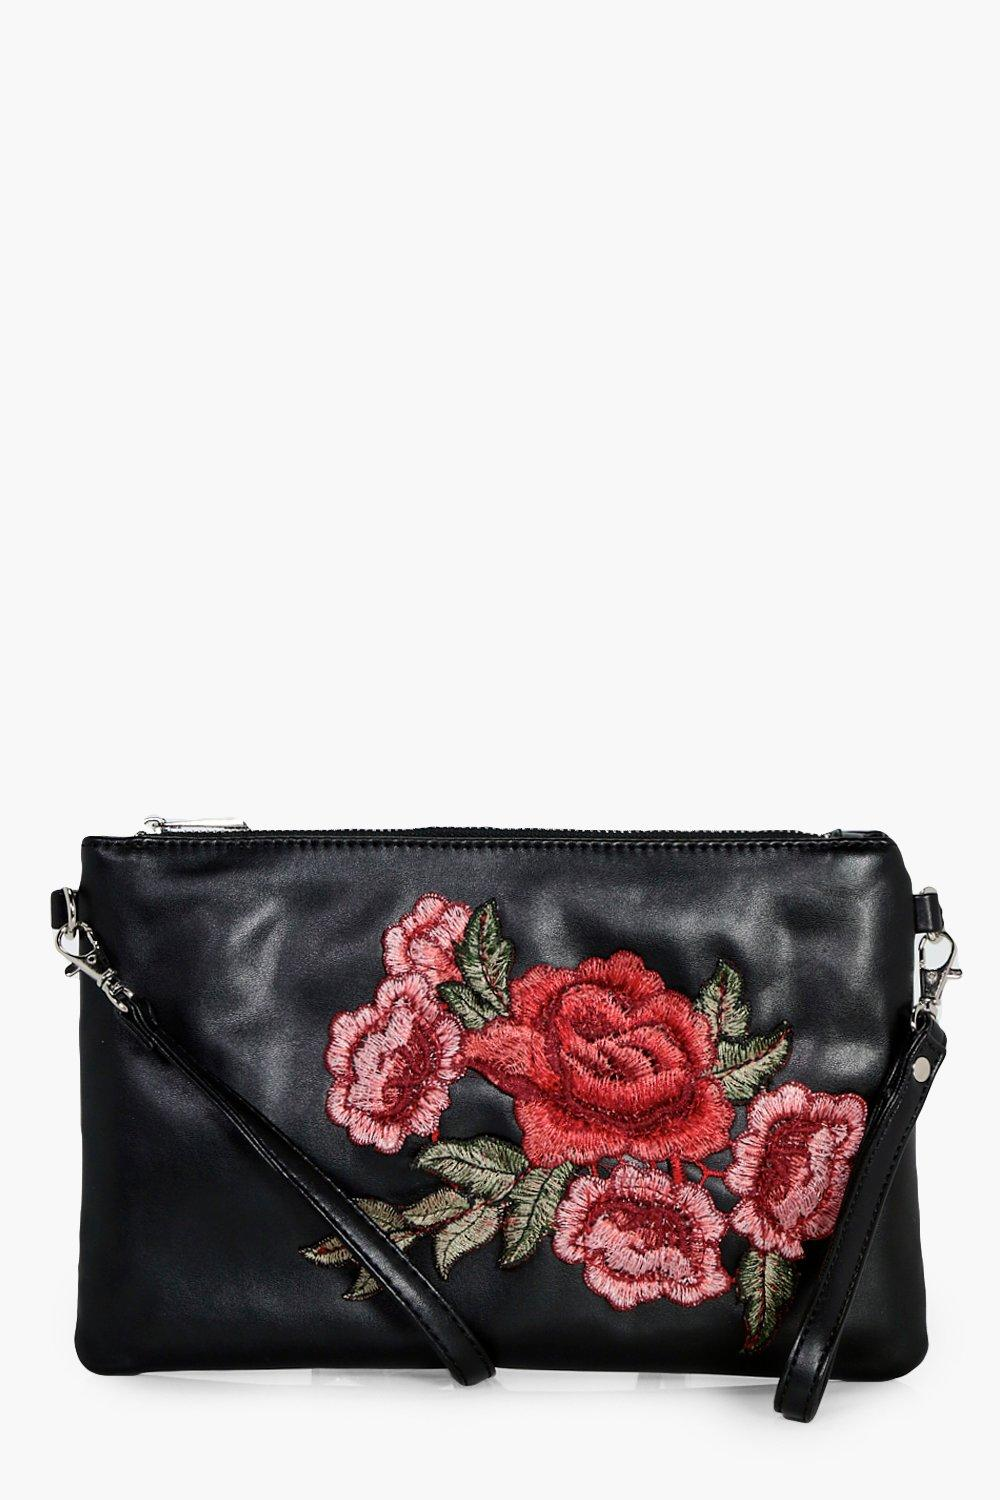 Floral Embroidered Cross Body Bag - black - Lacey